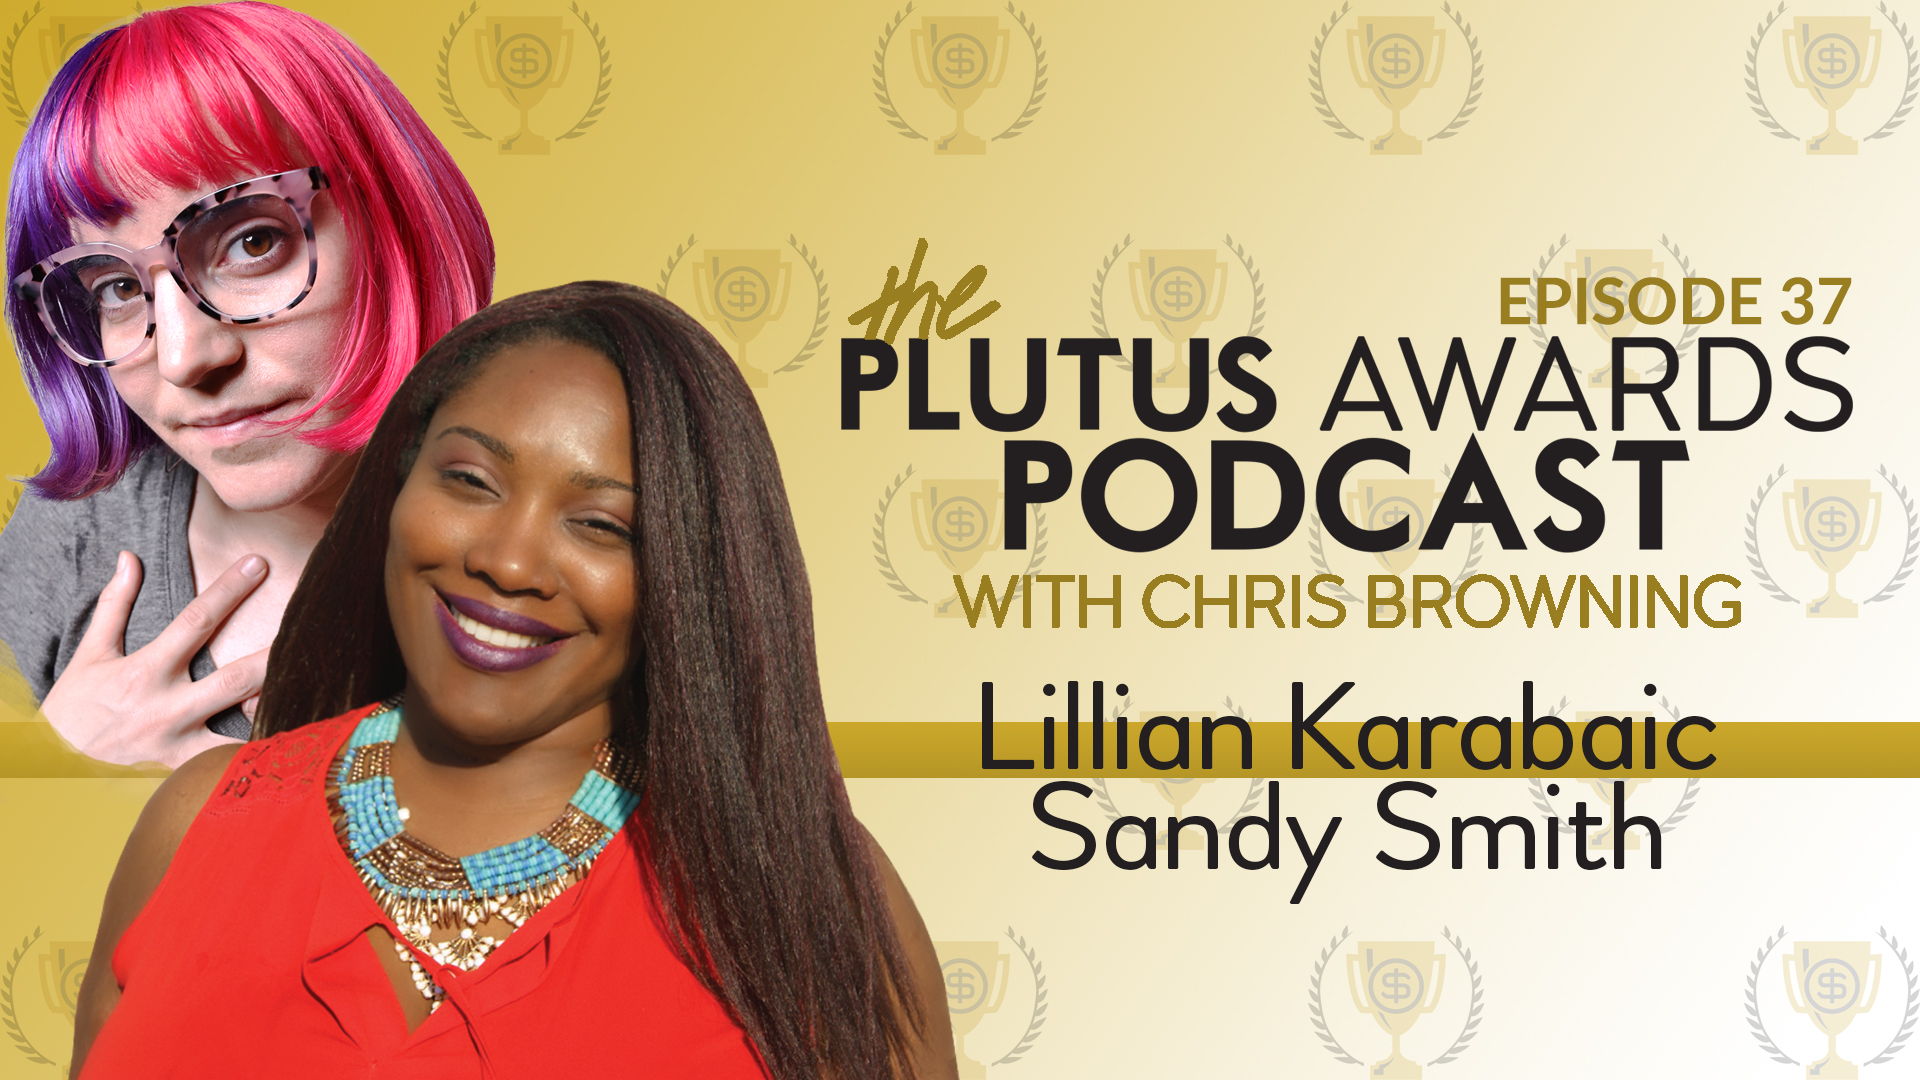 Plutus Awards Podcast Lillian Karabaic Sandy Smith